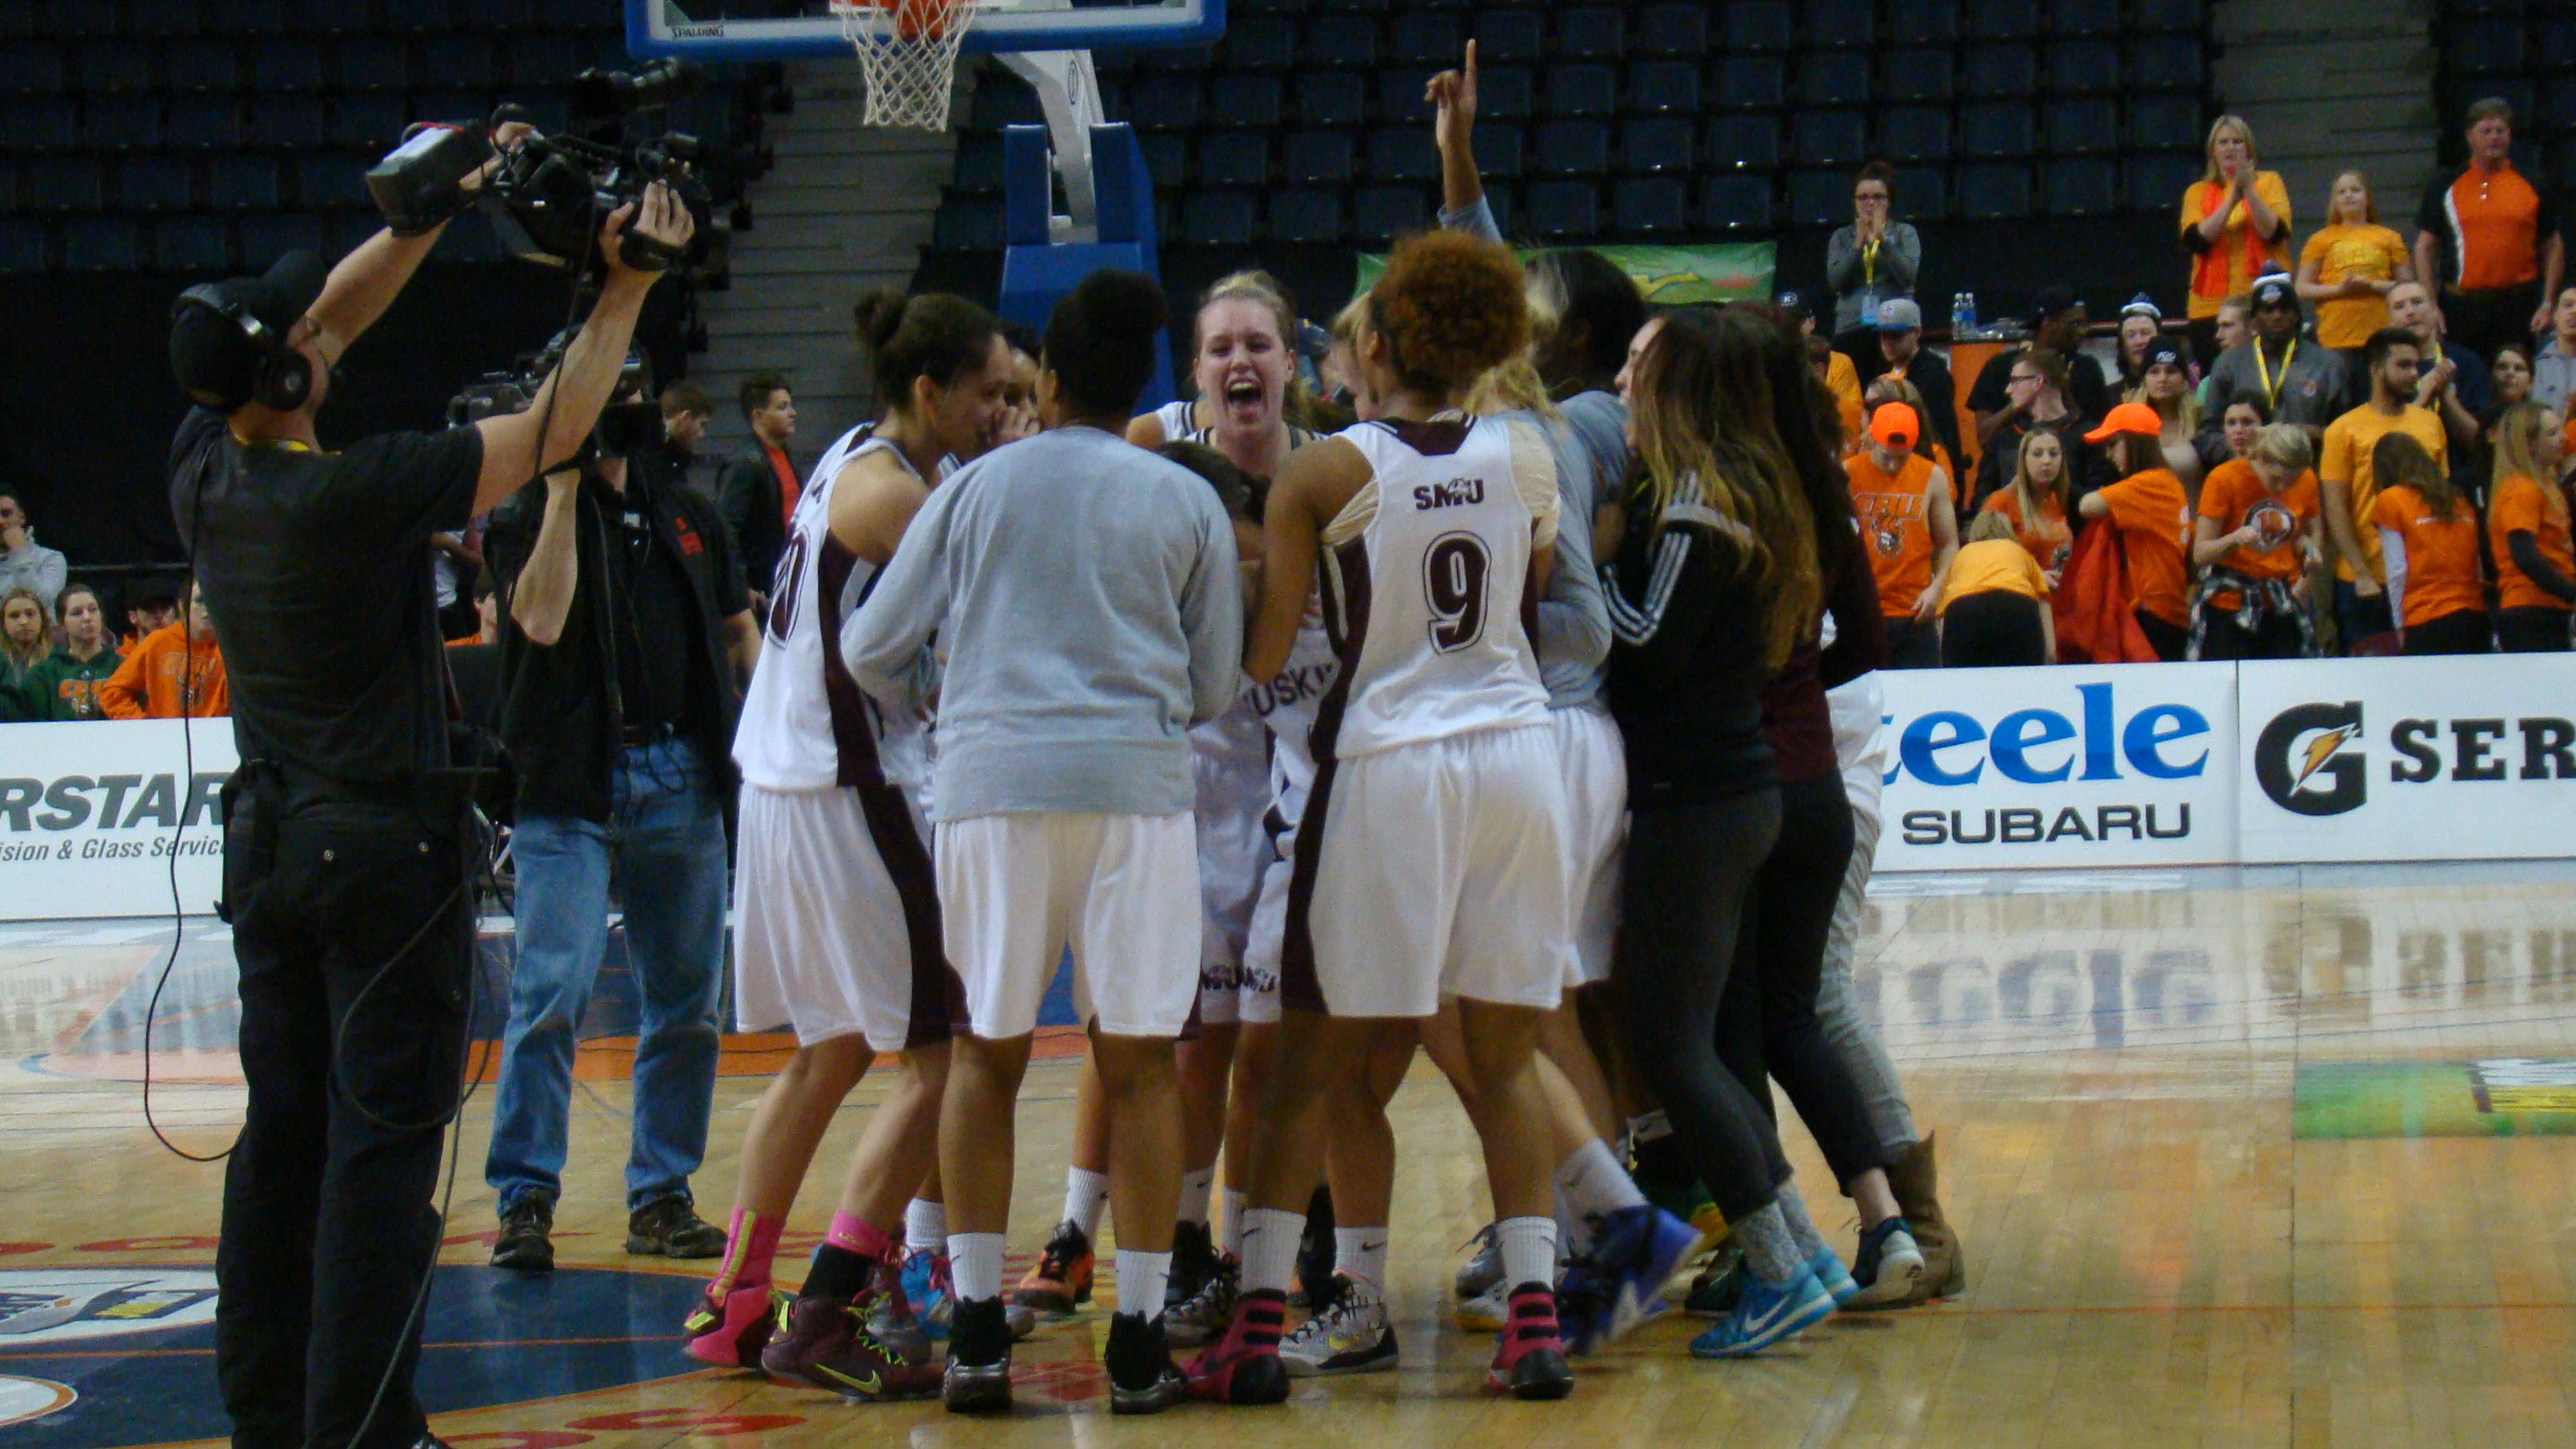 SMU Huskies celebrate their victory as Queen's We are the Champions fills the gym